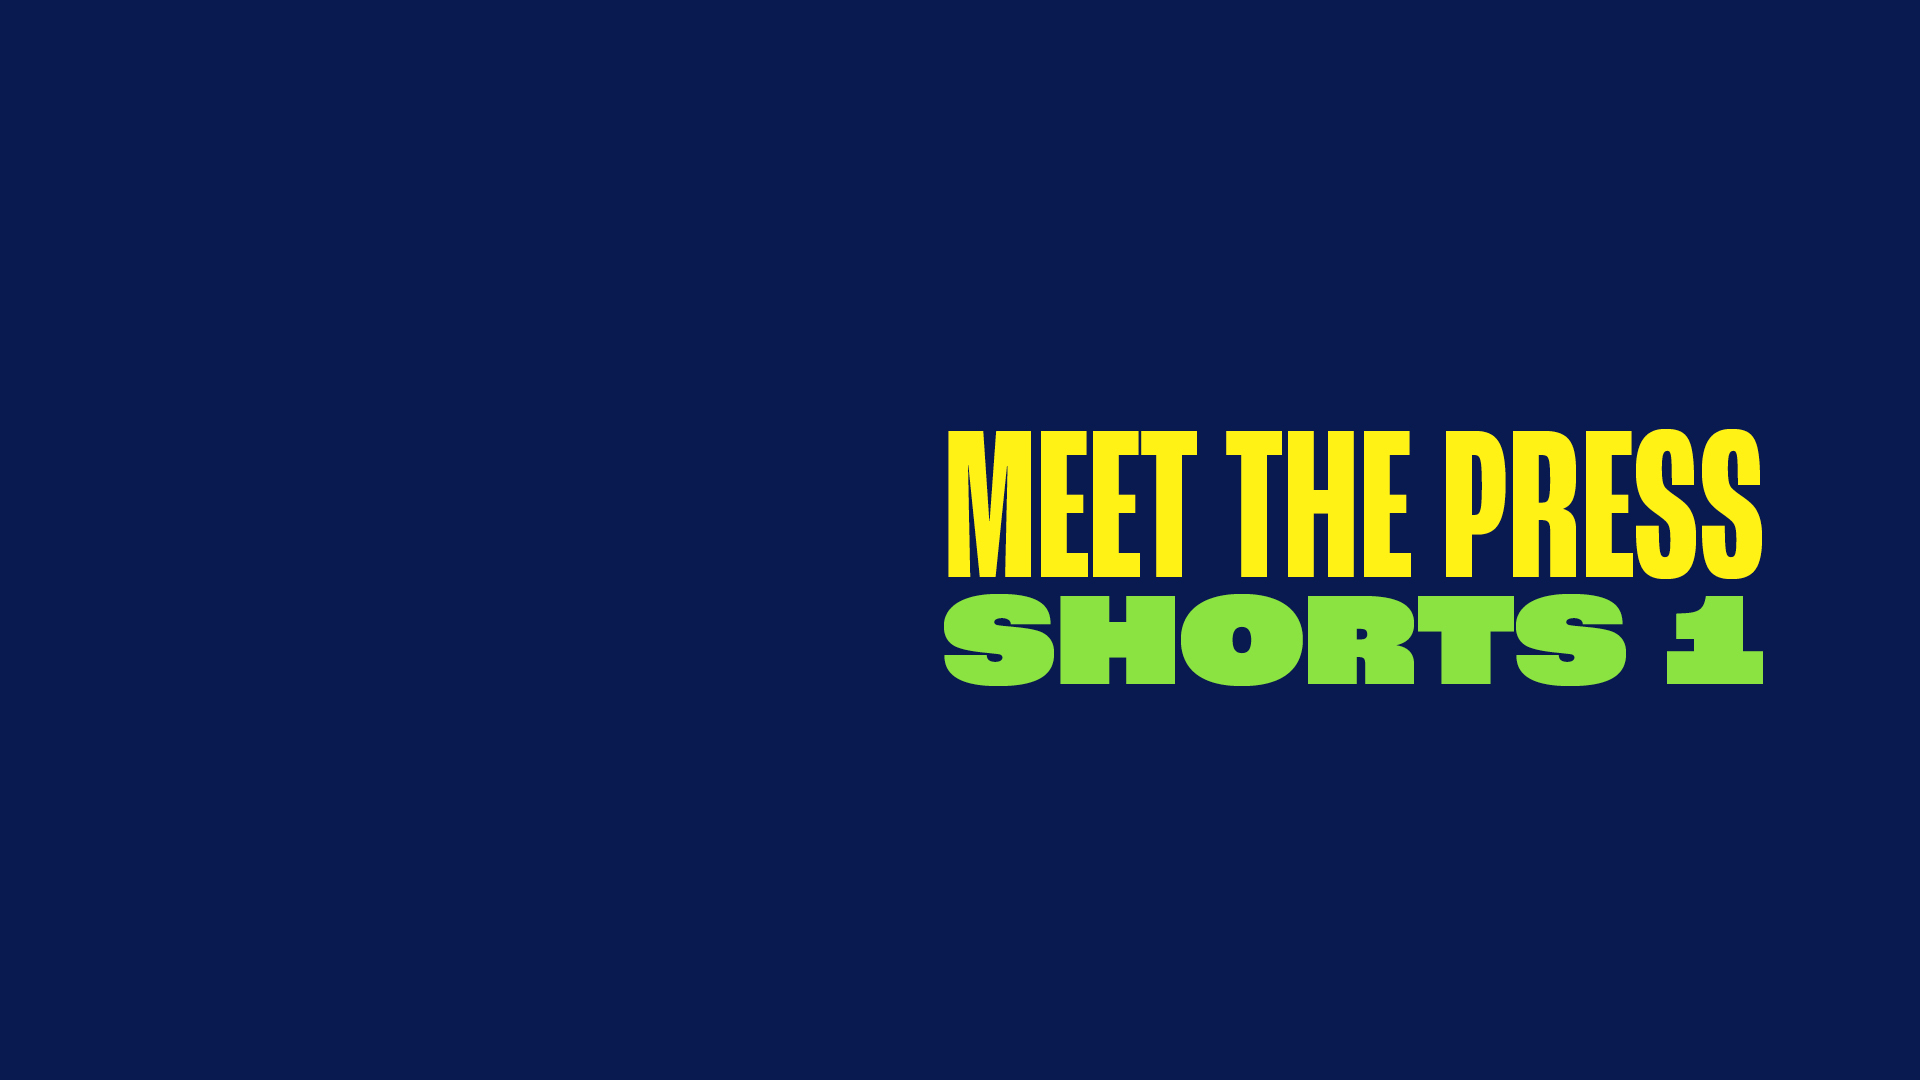 MEET THE PRESS SHORTS 1: When the News Becomes the News